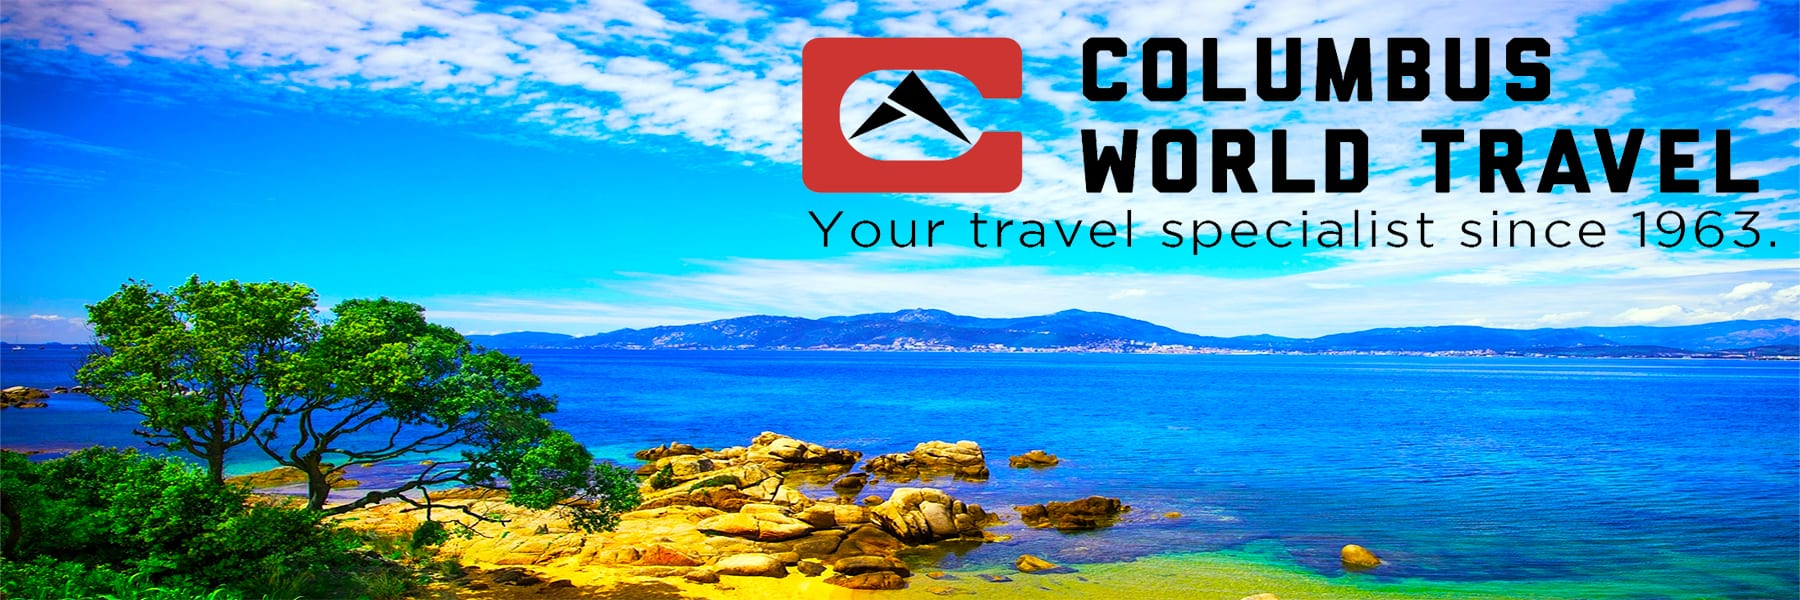 Columbus World Travel = your travel specialists